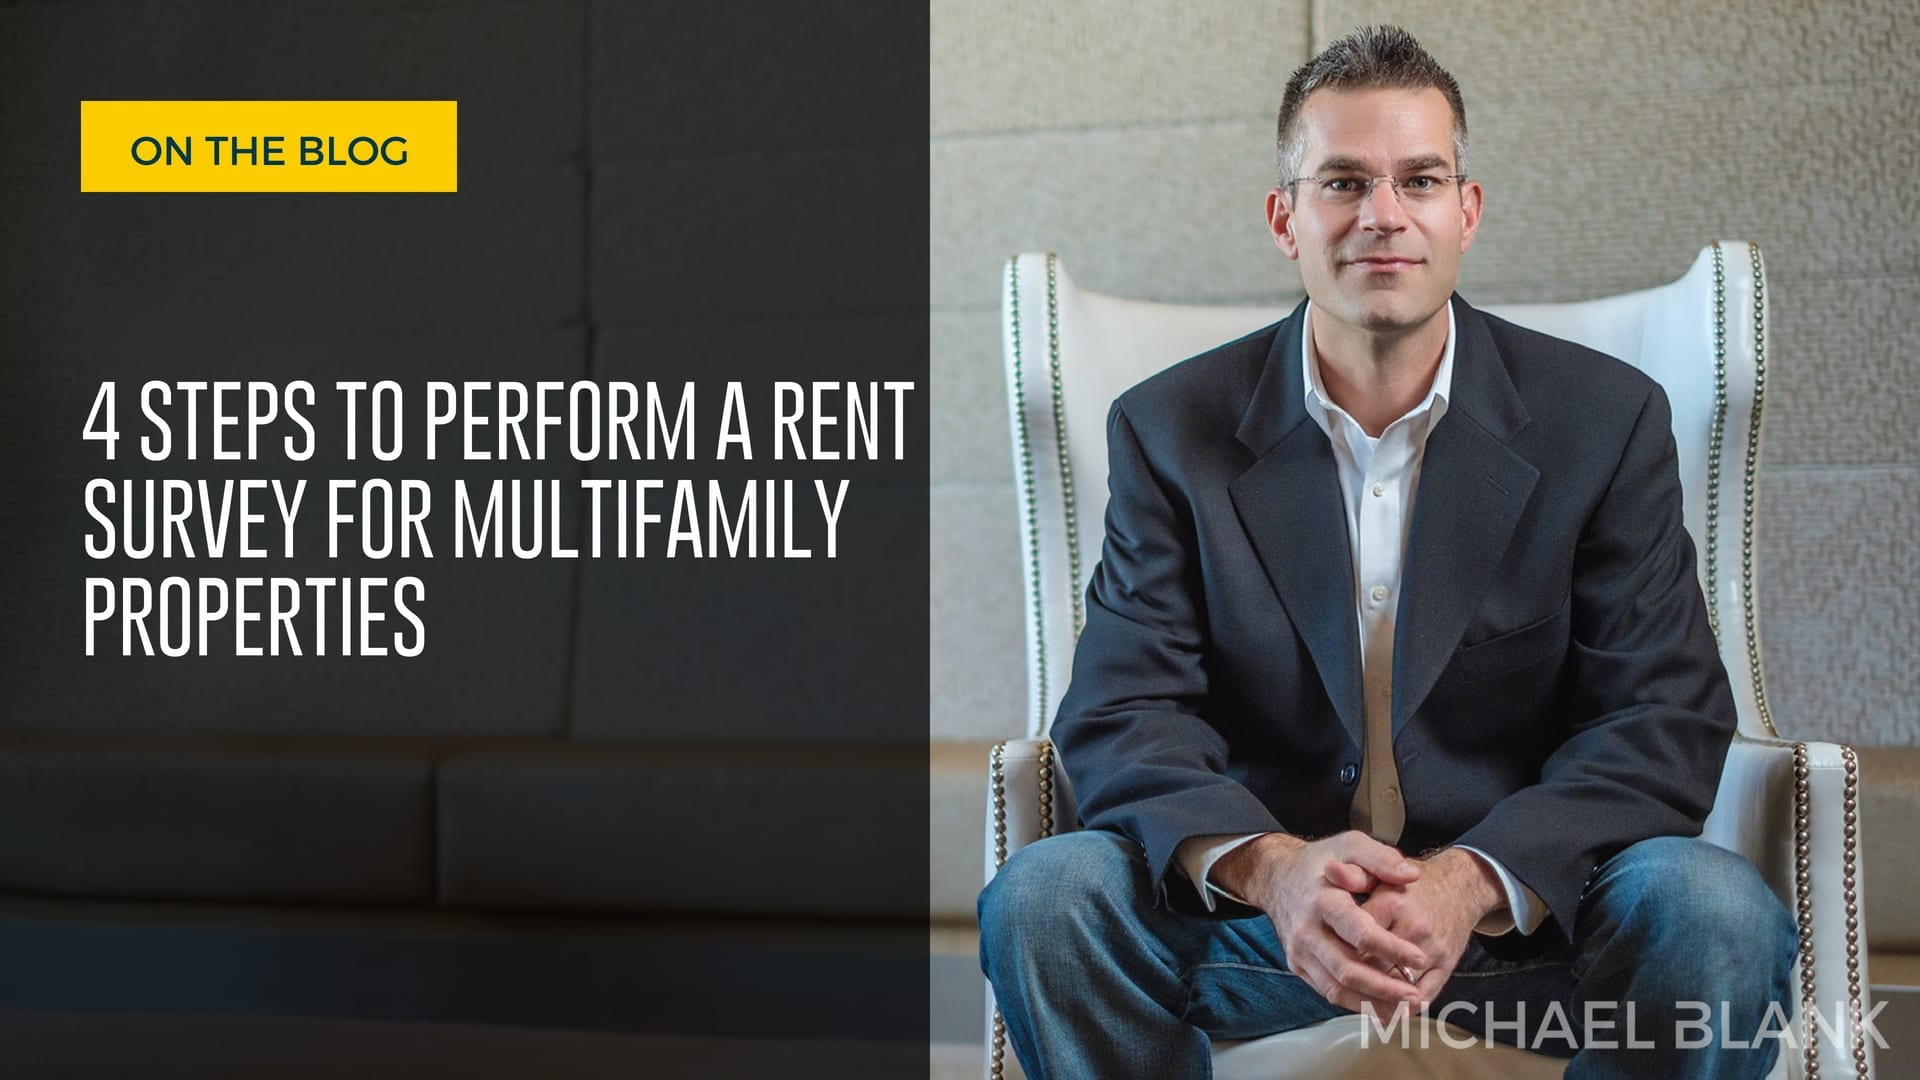 4 Steps to Perform a Rent Survey for Multifamily Properties